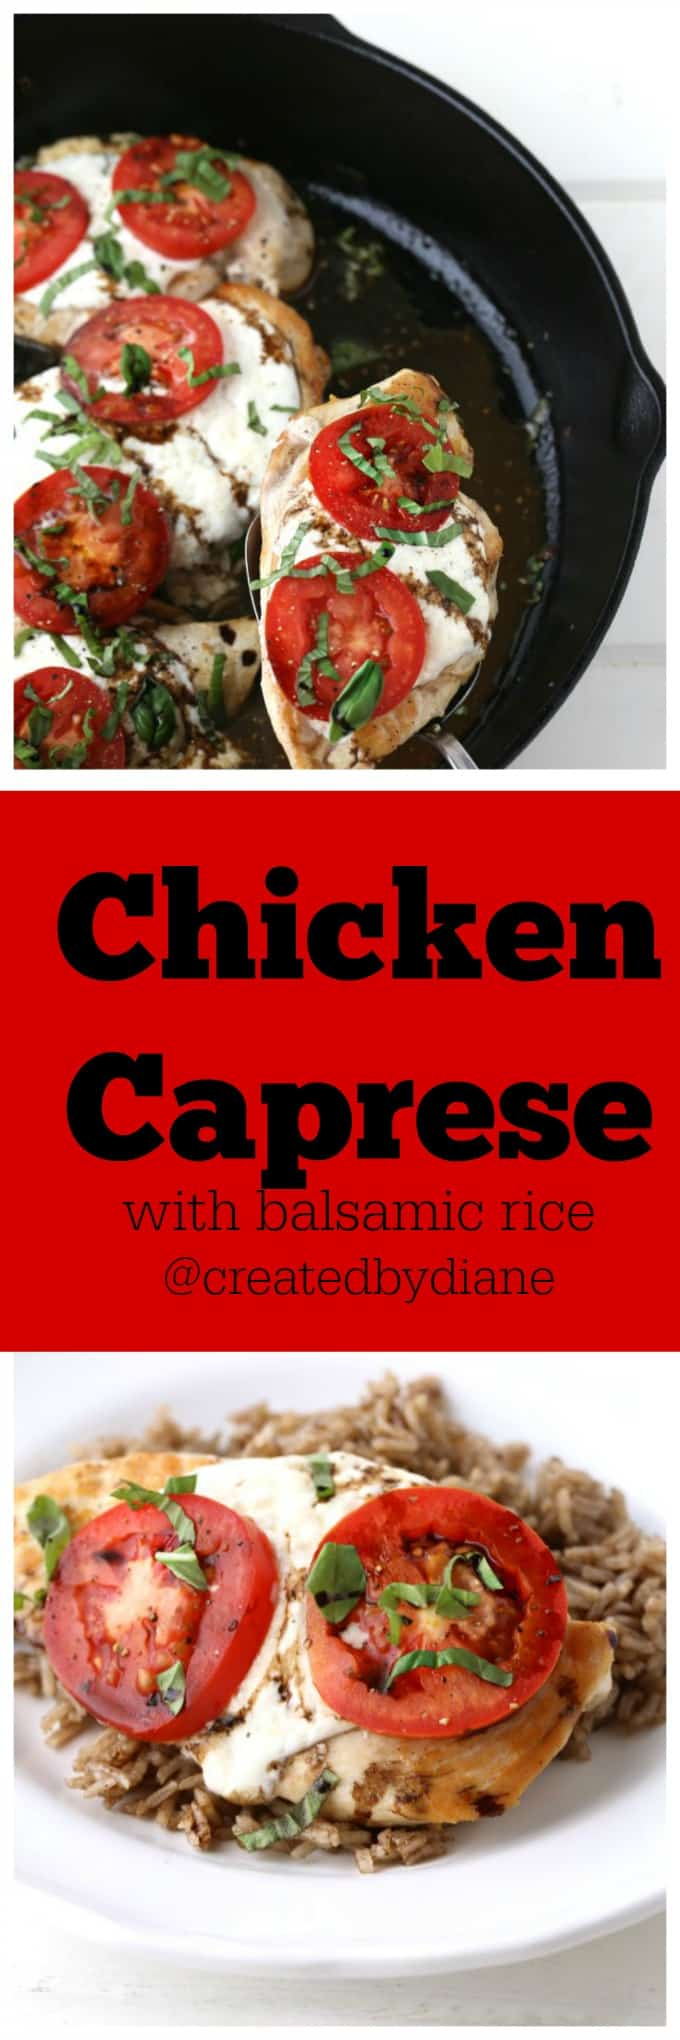 Chicken Caprese with Balsamic Rice @createdbydiane